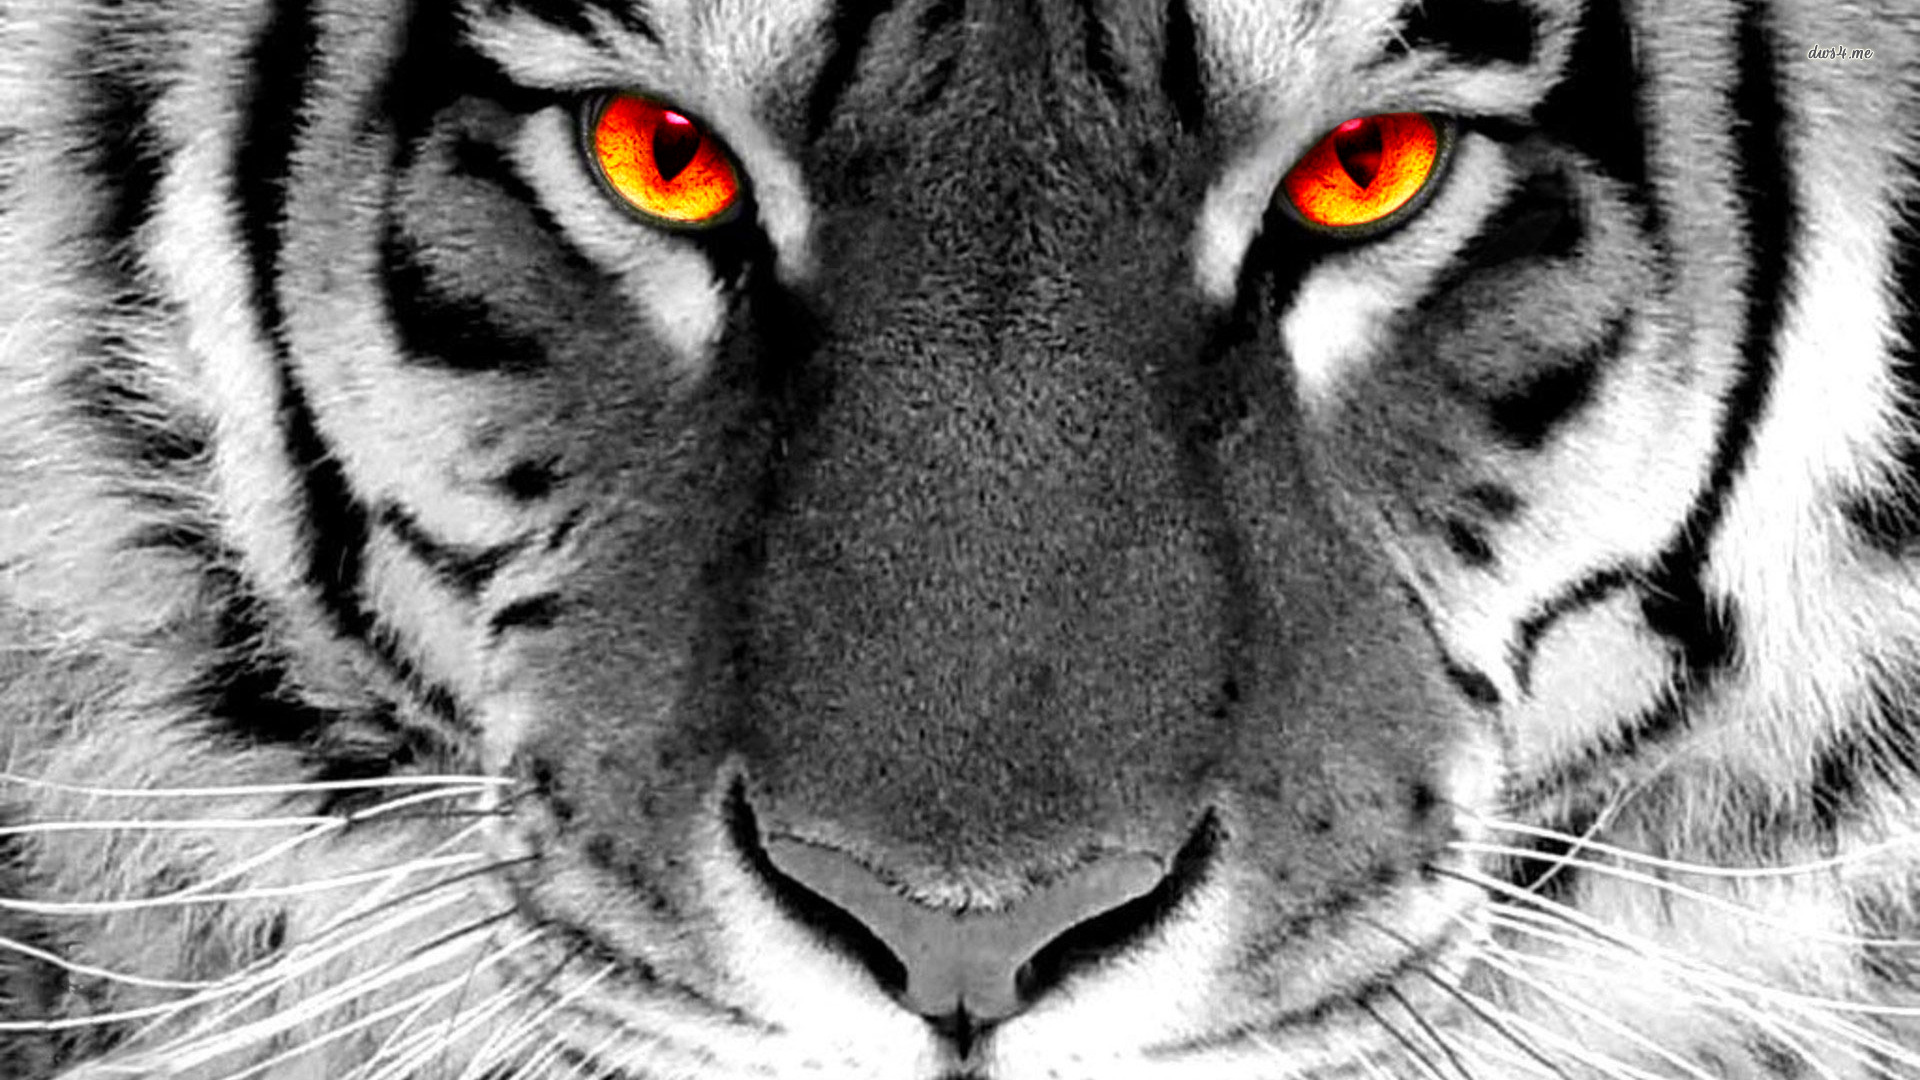 White Tiger With Red Eyes Tiger Wallpaper Tiger Images Tiger